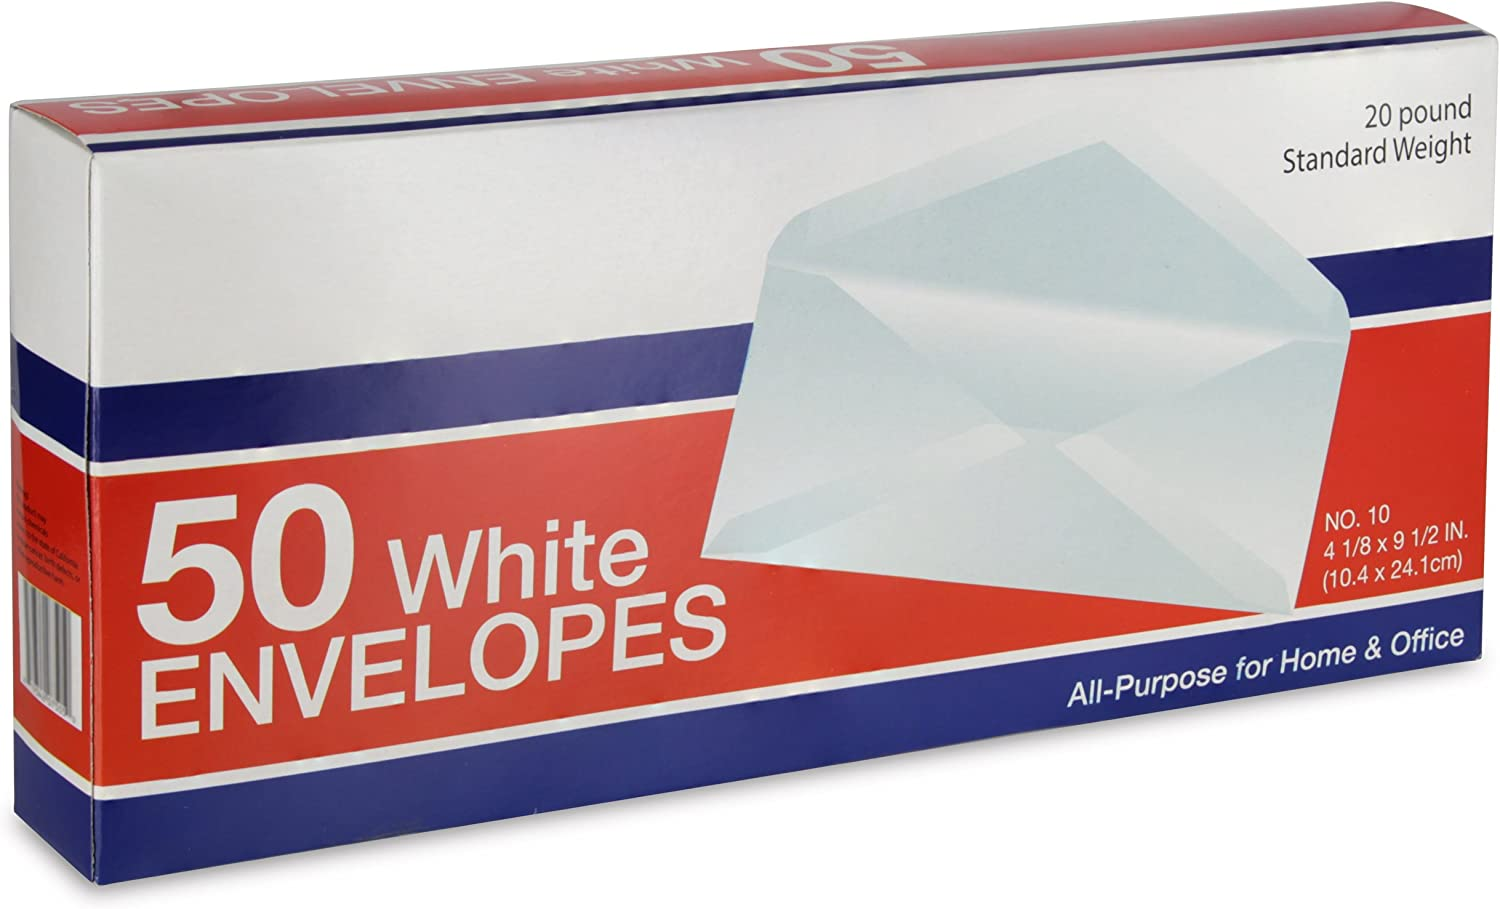 Emraw White All-Purpose Envelopes #10 Business Size 4-1/8 x 9-1/2 Inch - 50/Box - for Office & Home Use